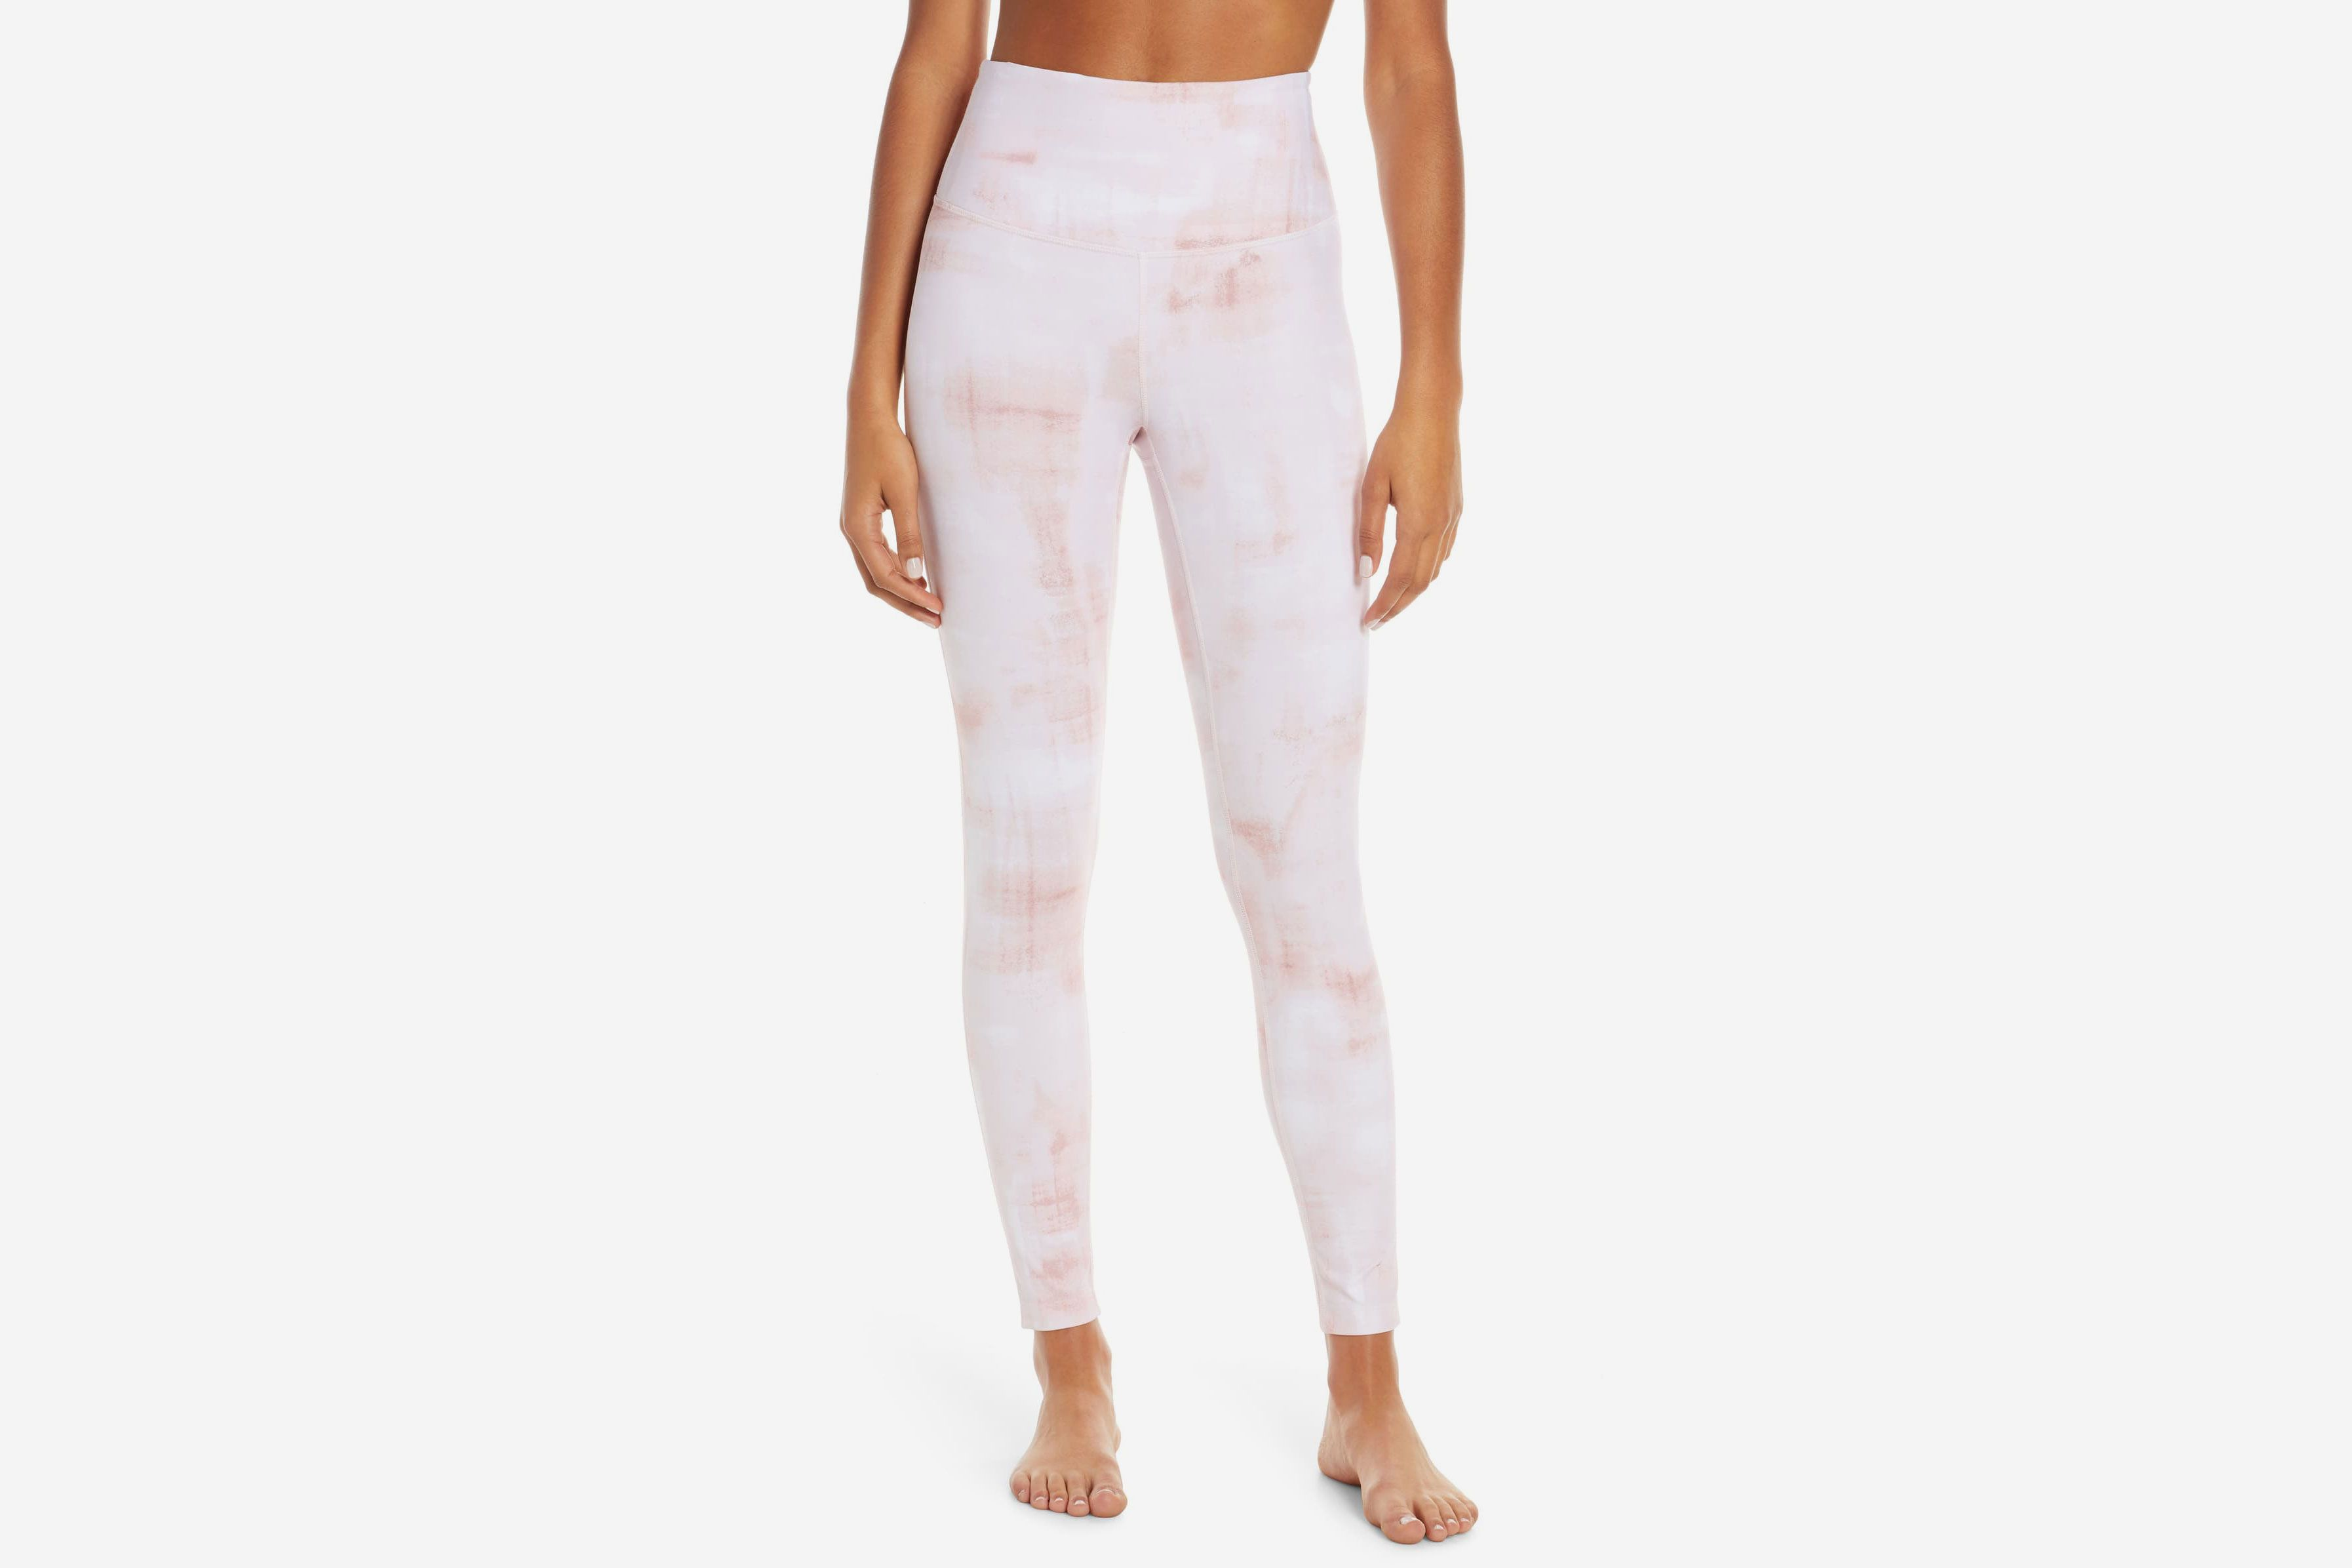 f9c08bc54f94d Community Canyon Live In High Waist 7/8 Leggings at Nordstrom